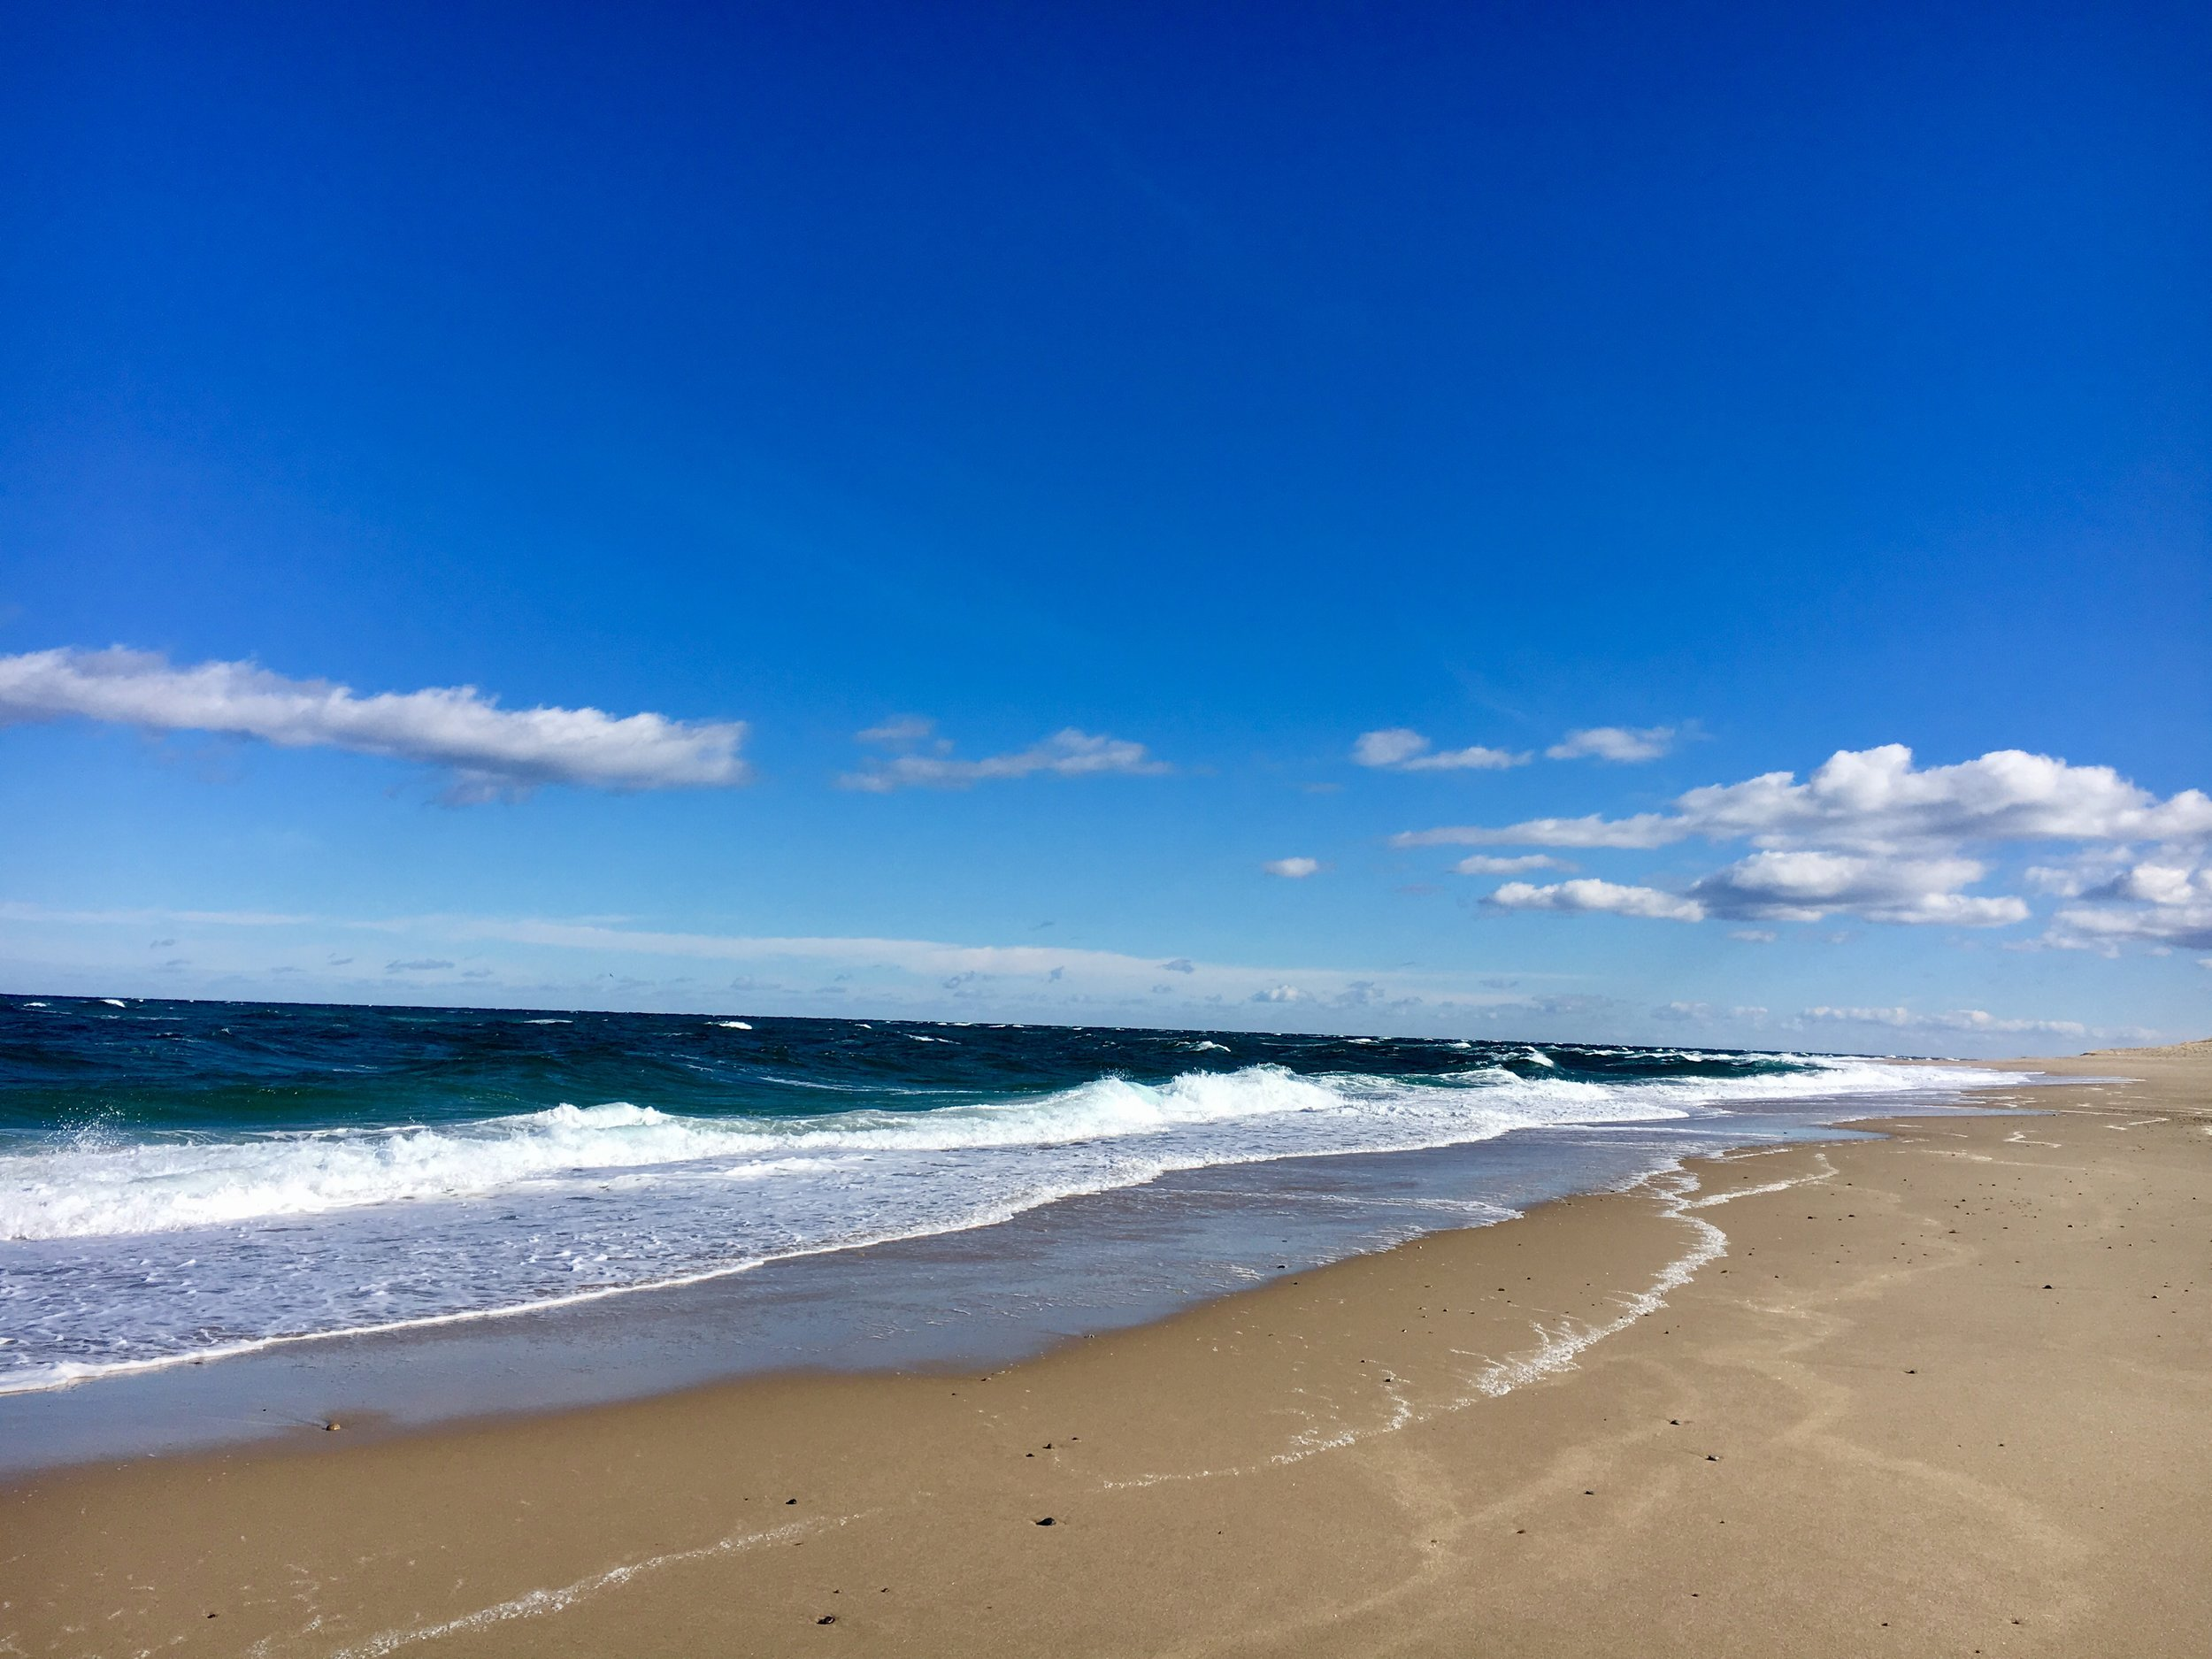 Cape Cod National Seashore - February 2017